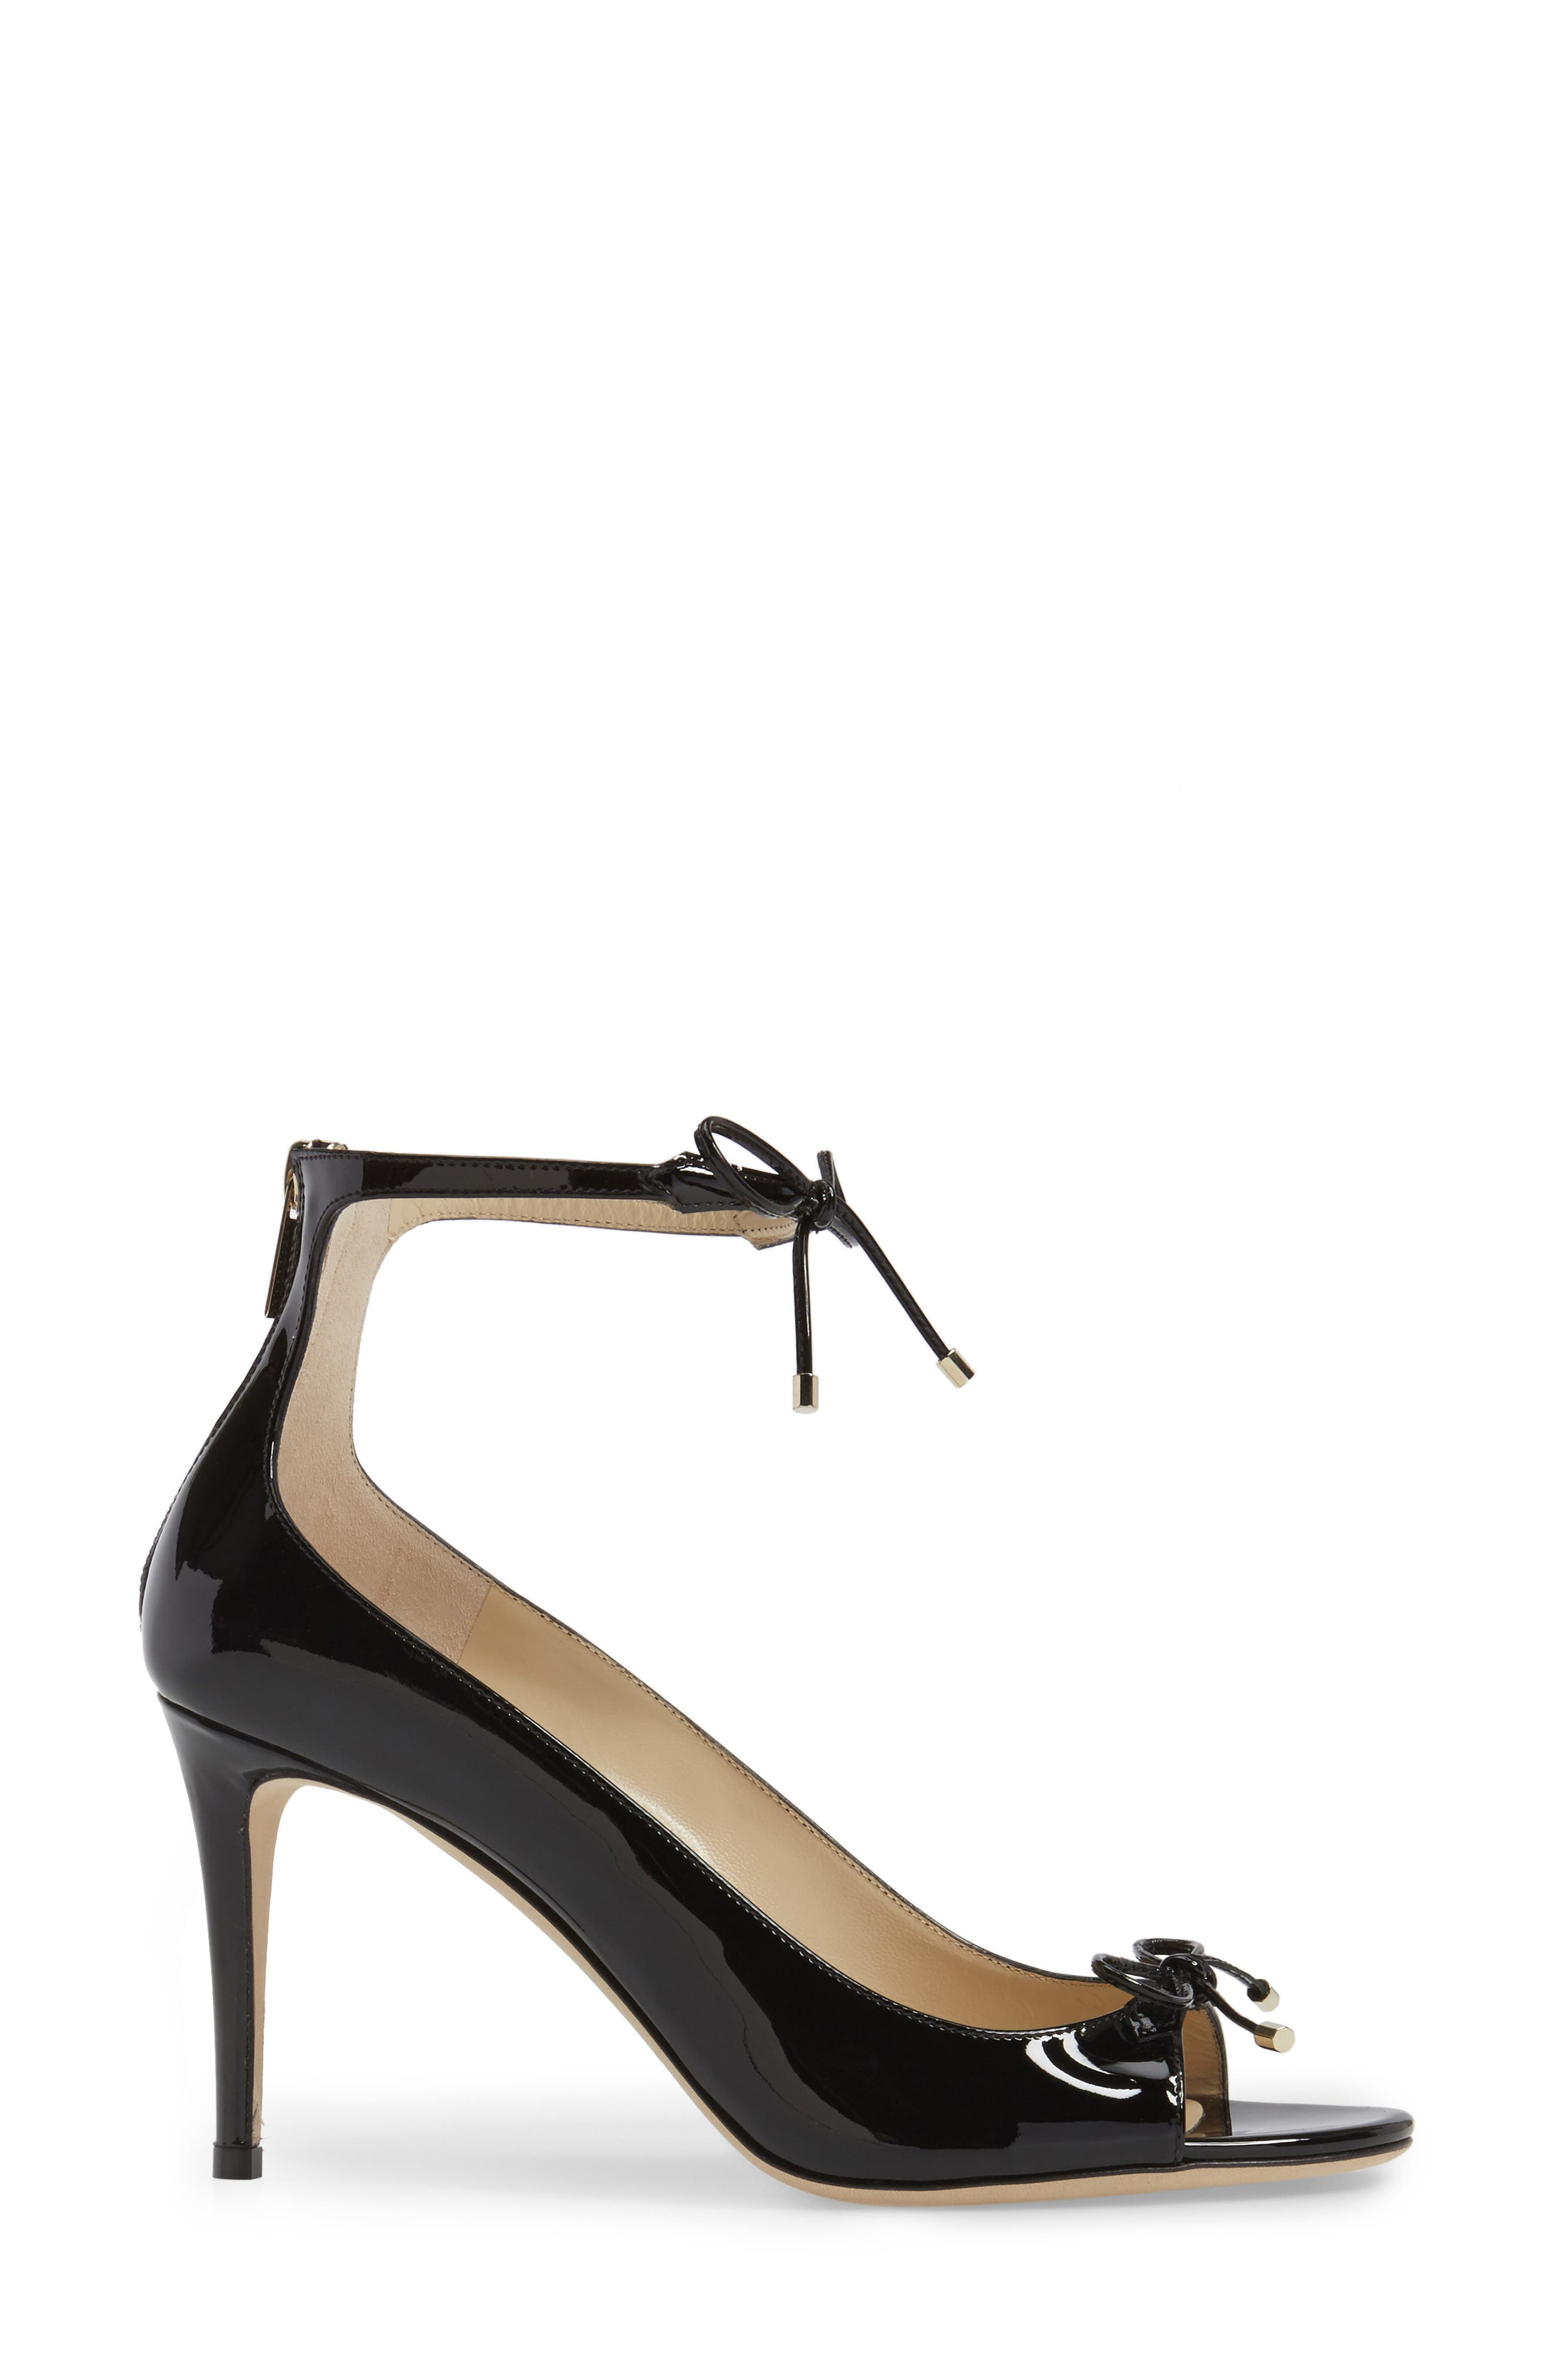 Sofia Peep Toe Pump,                             Alternate thumbnail 3, color,                             Black